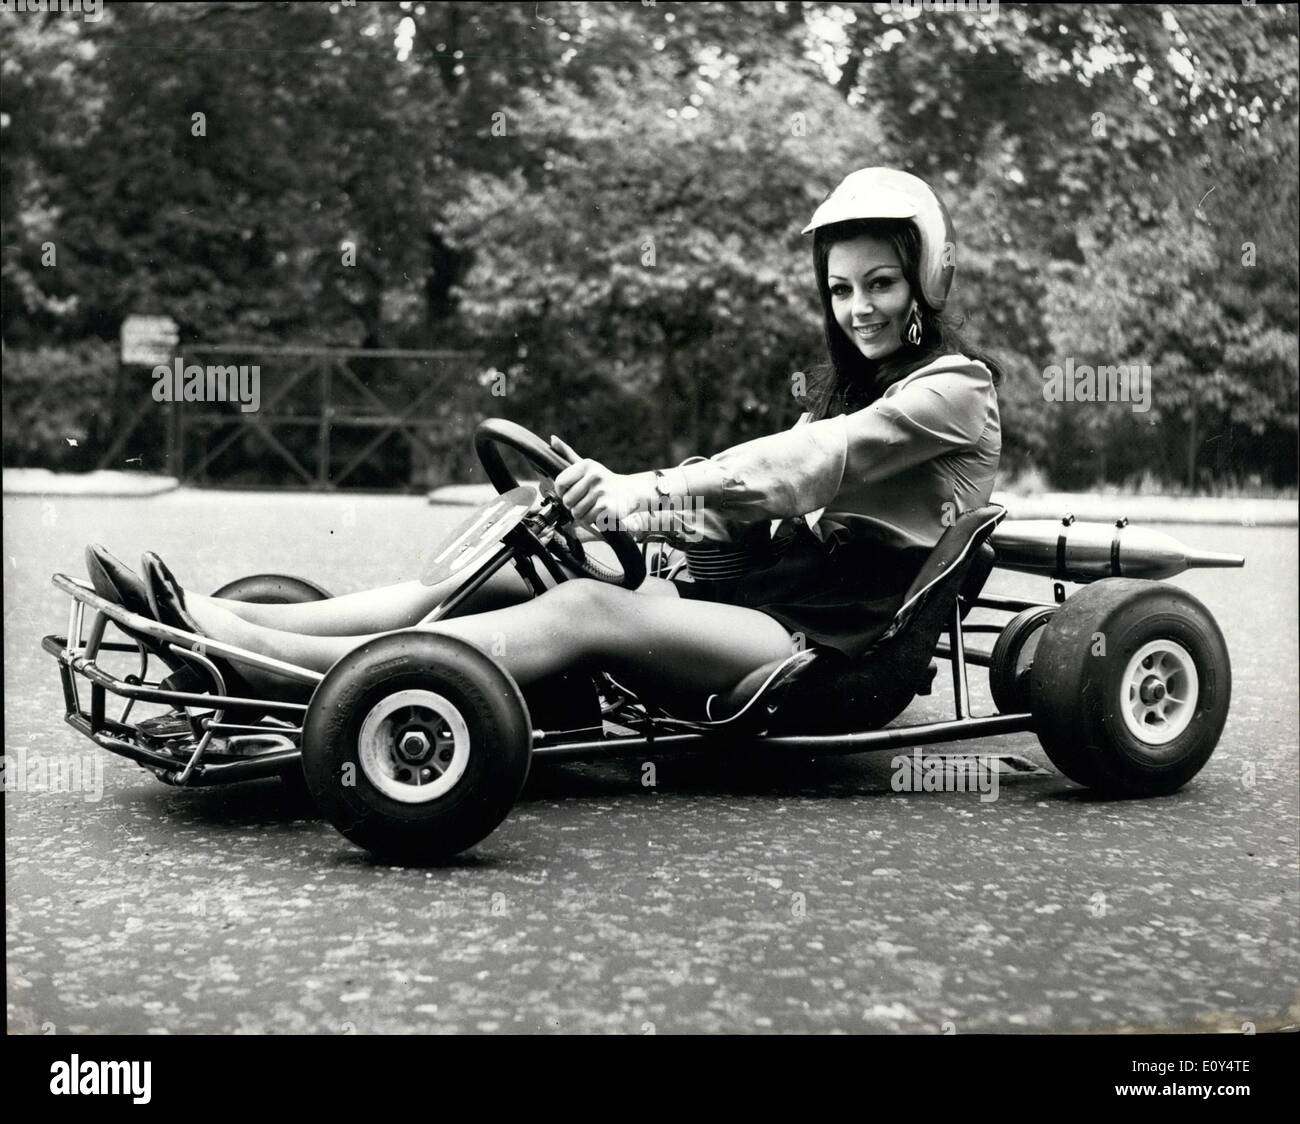 Aug. 08, 1968 - Miss Go Kart 1968 - 22 Year old Marnie Cahill, a ...